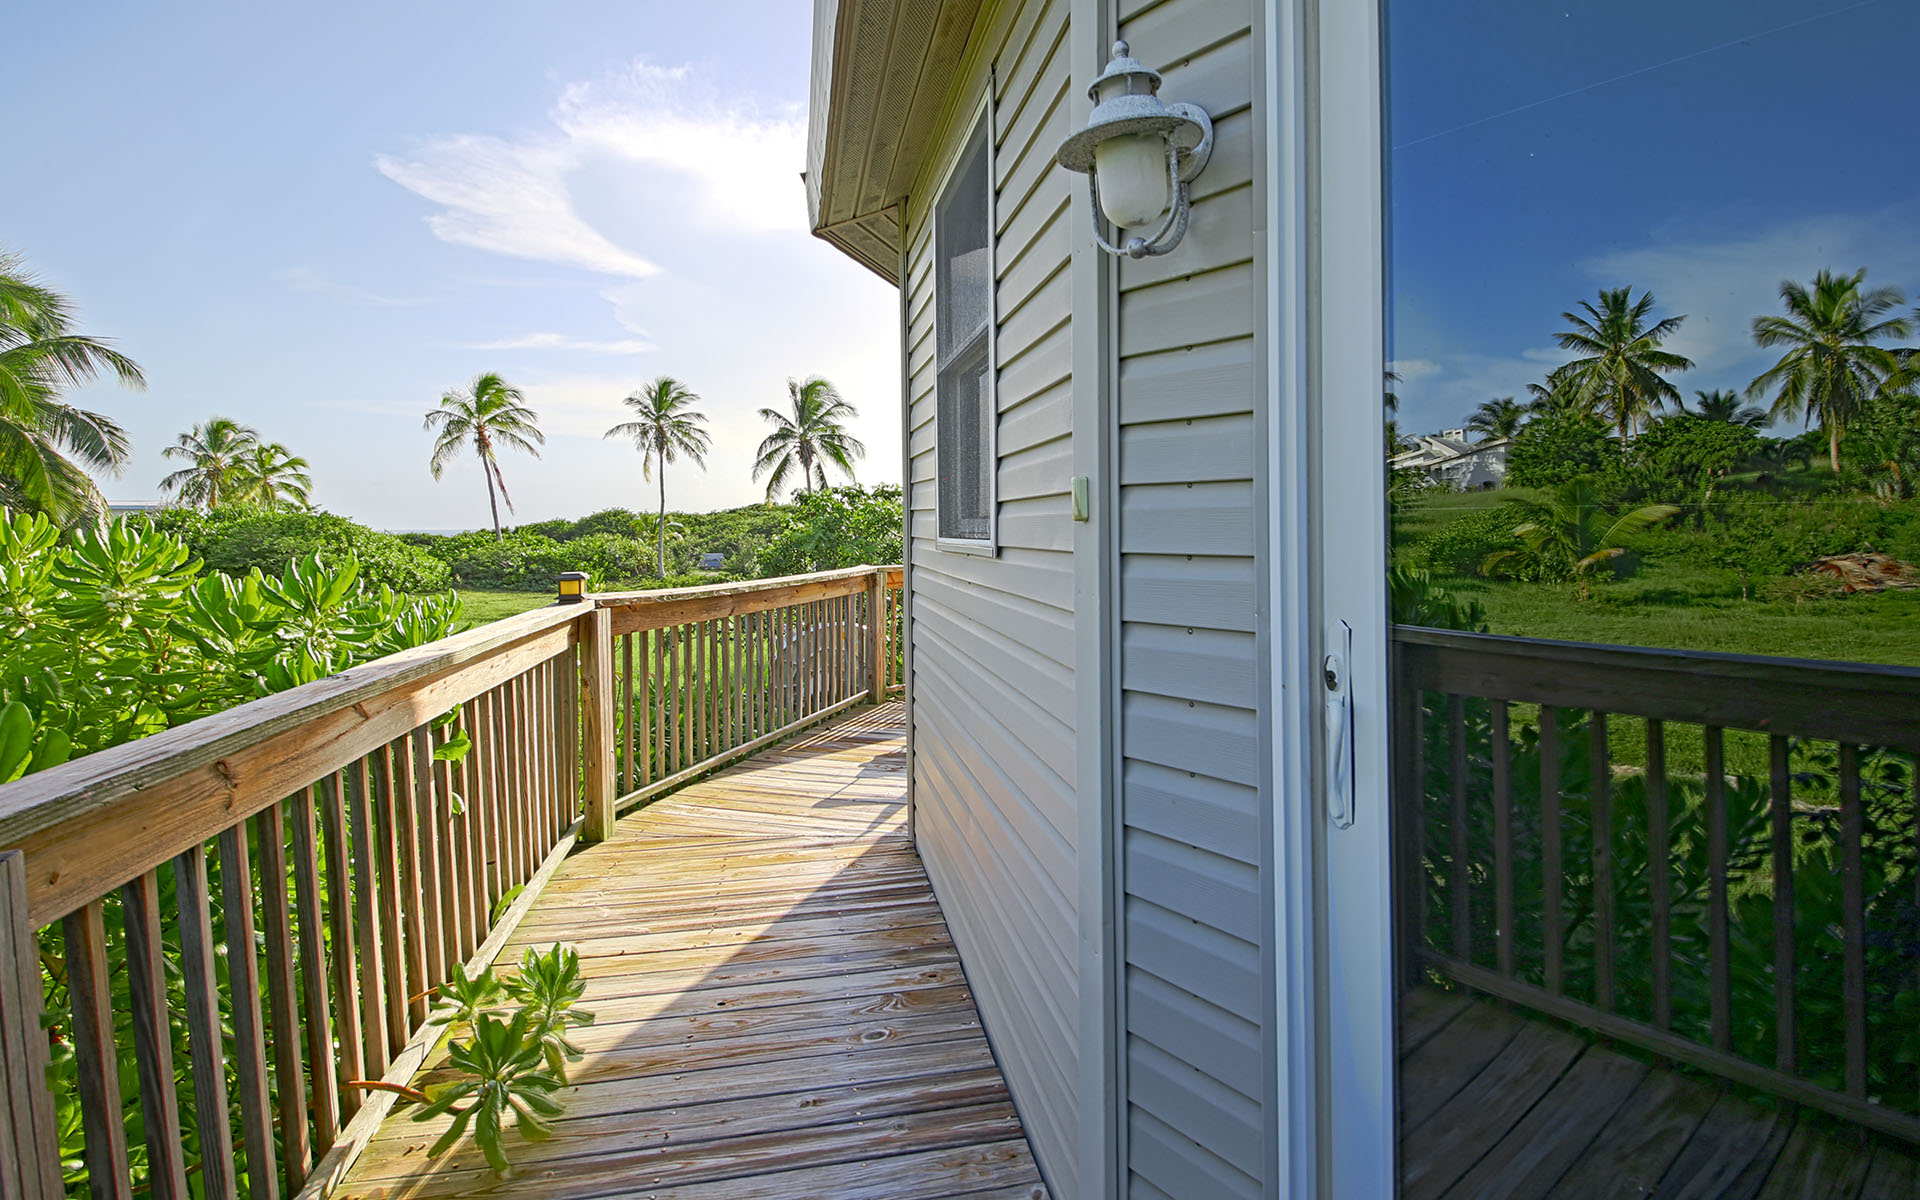 Single Family Home for Sale at Beach Cottage Getaway in Gregory Town Eleuthera MLS 28321 Eleuthera, Bahamas